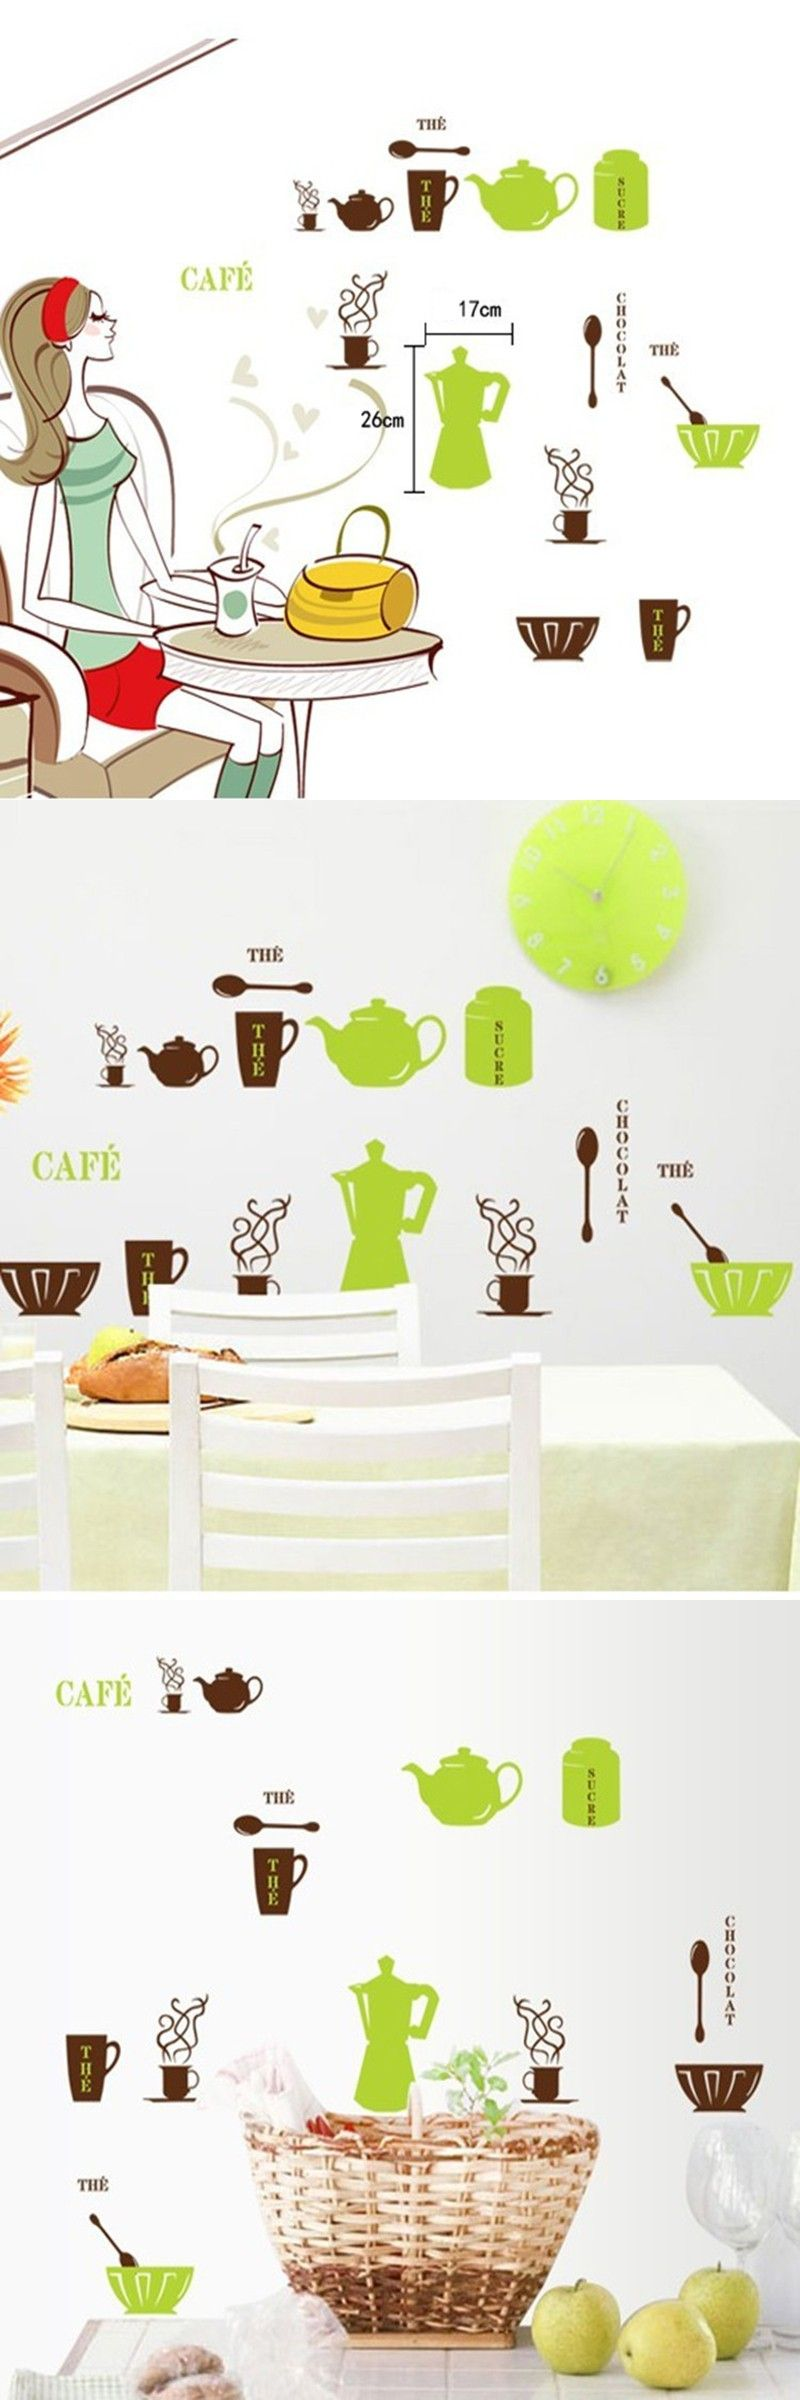 Hot sale green brown kettle spoon bow wall stickers for kitchen hot sale green brown kettle spoon bow wall stickers for kitchen removable warm home decor kitchen decoration amipublicfo Choice Image